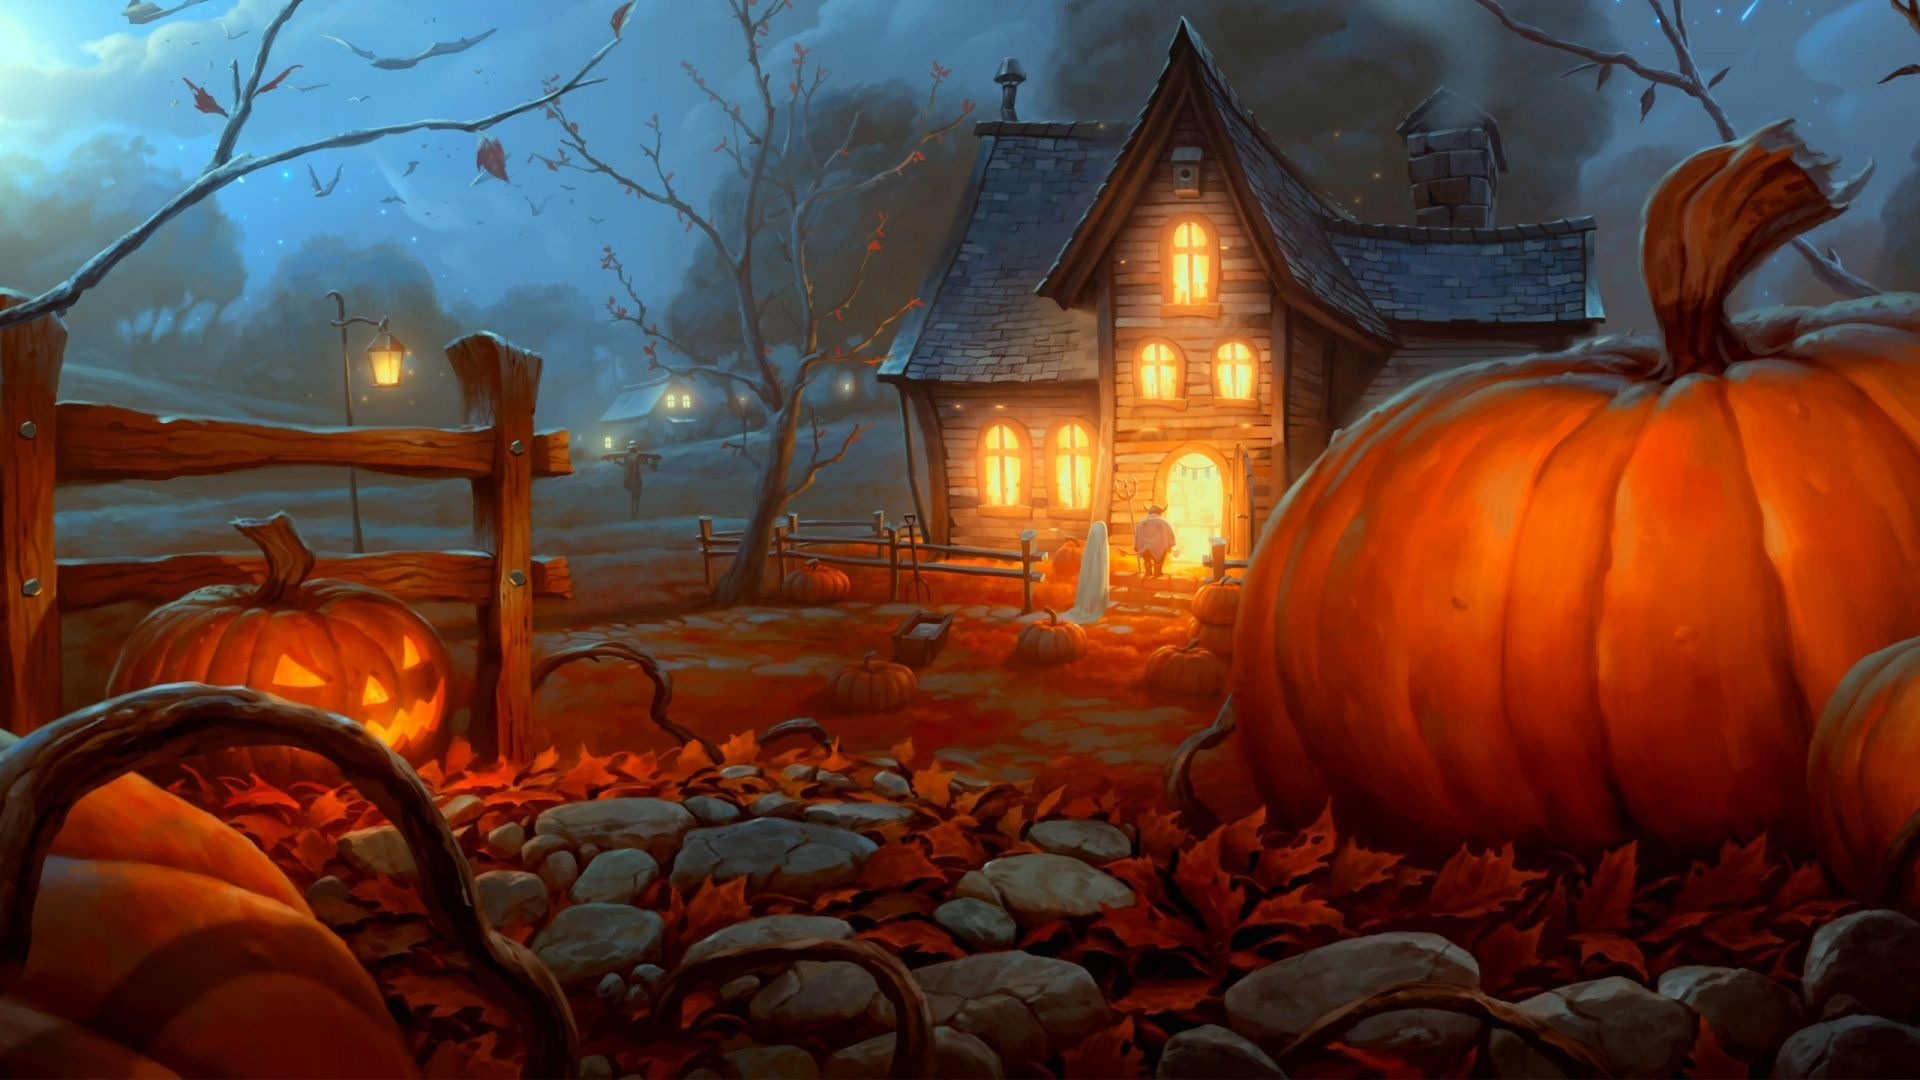 1920x1080 Download Halloween Wallpapers In 2K And Full HD